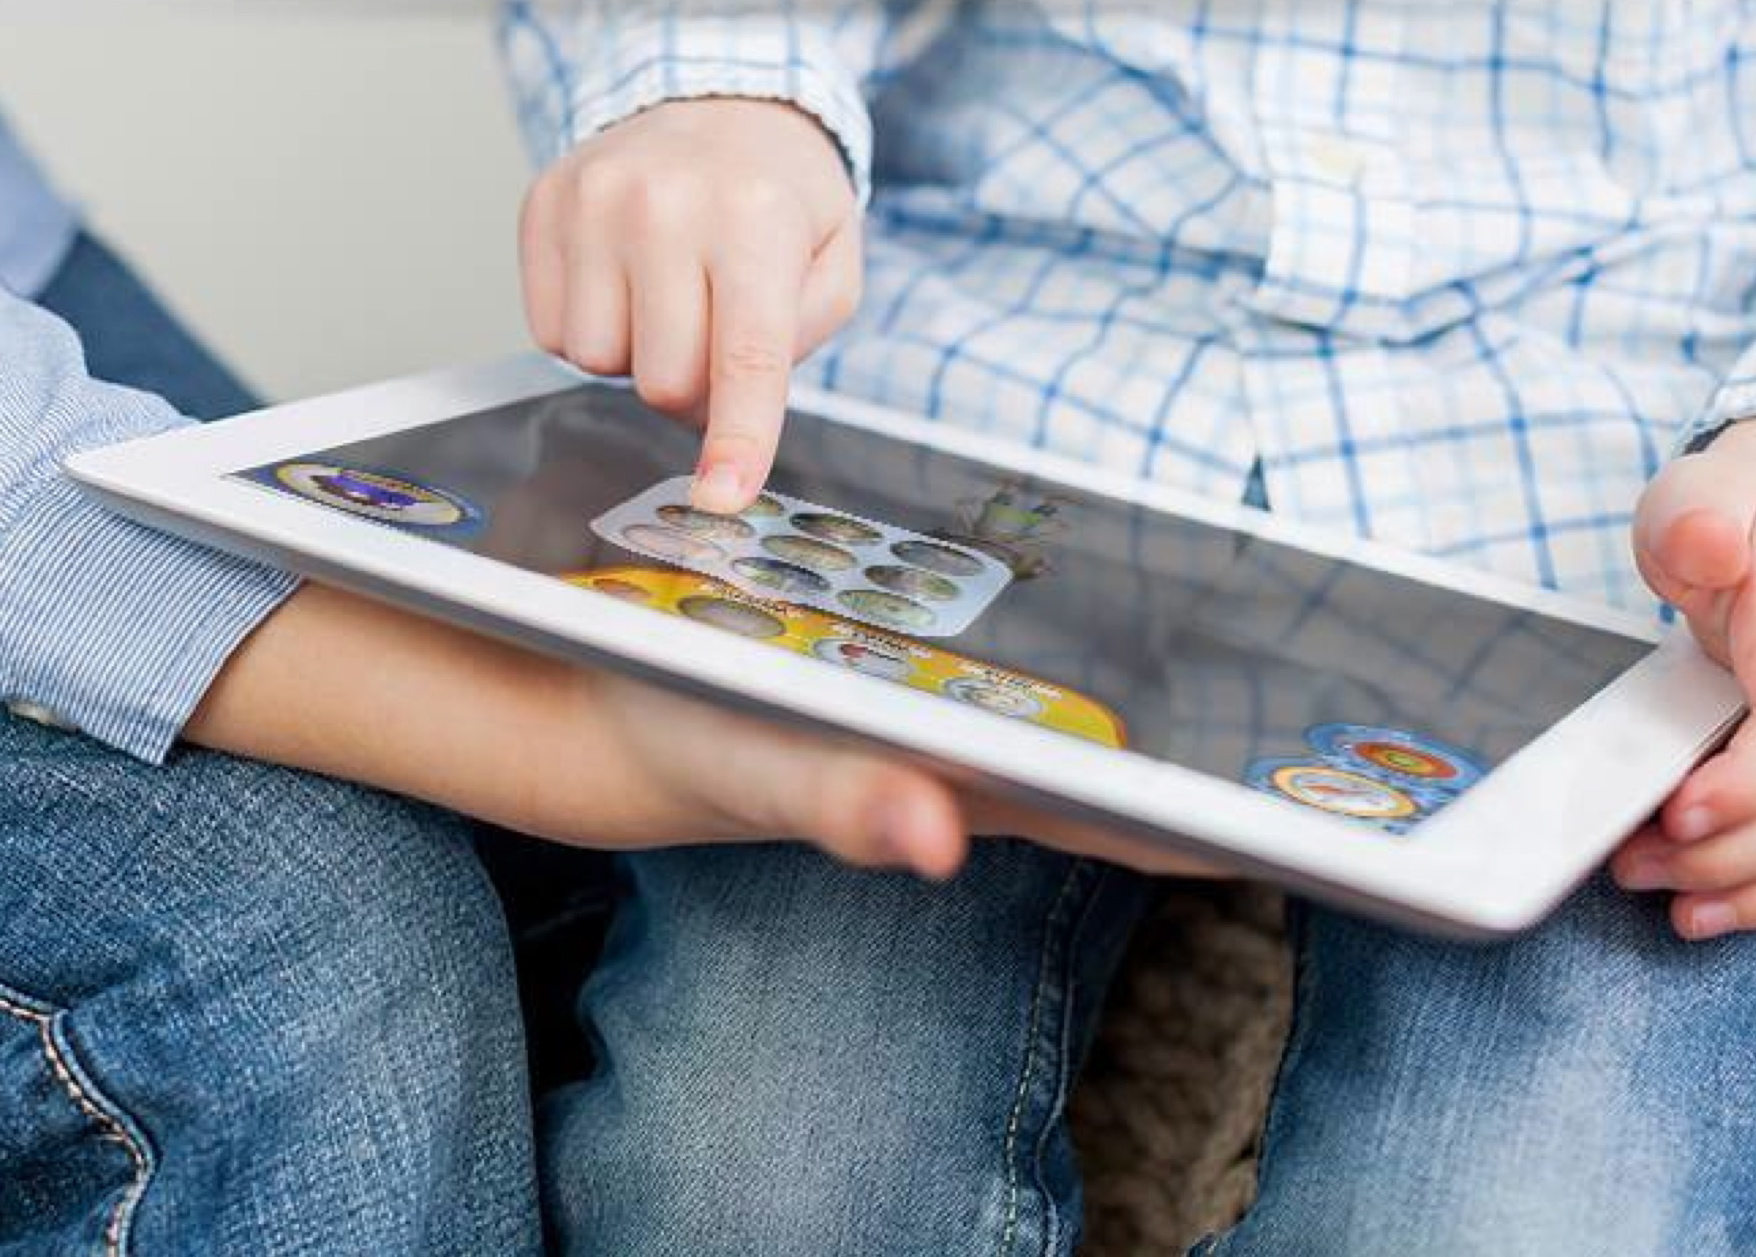 How A Tablet Can Help Autistic Children Communicate